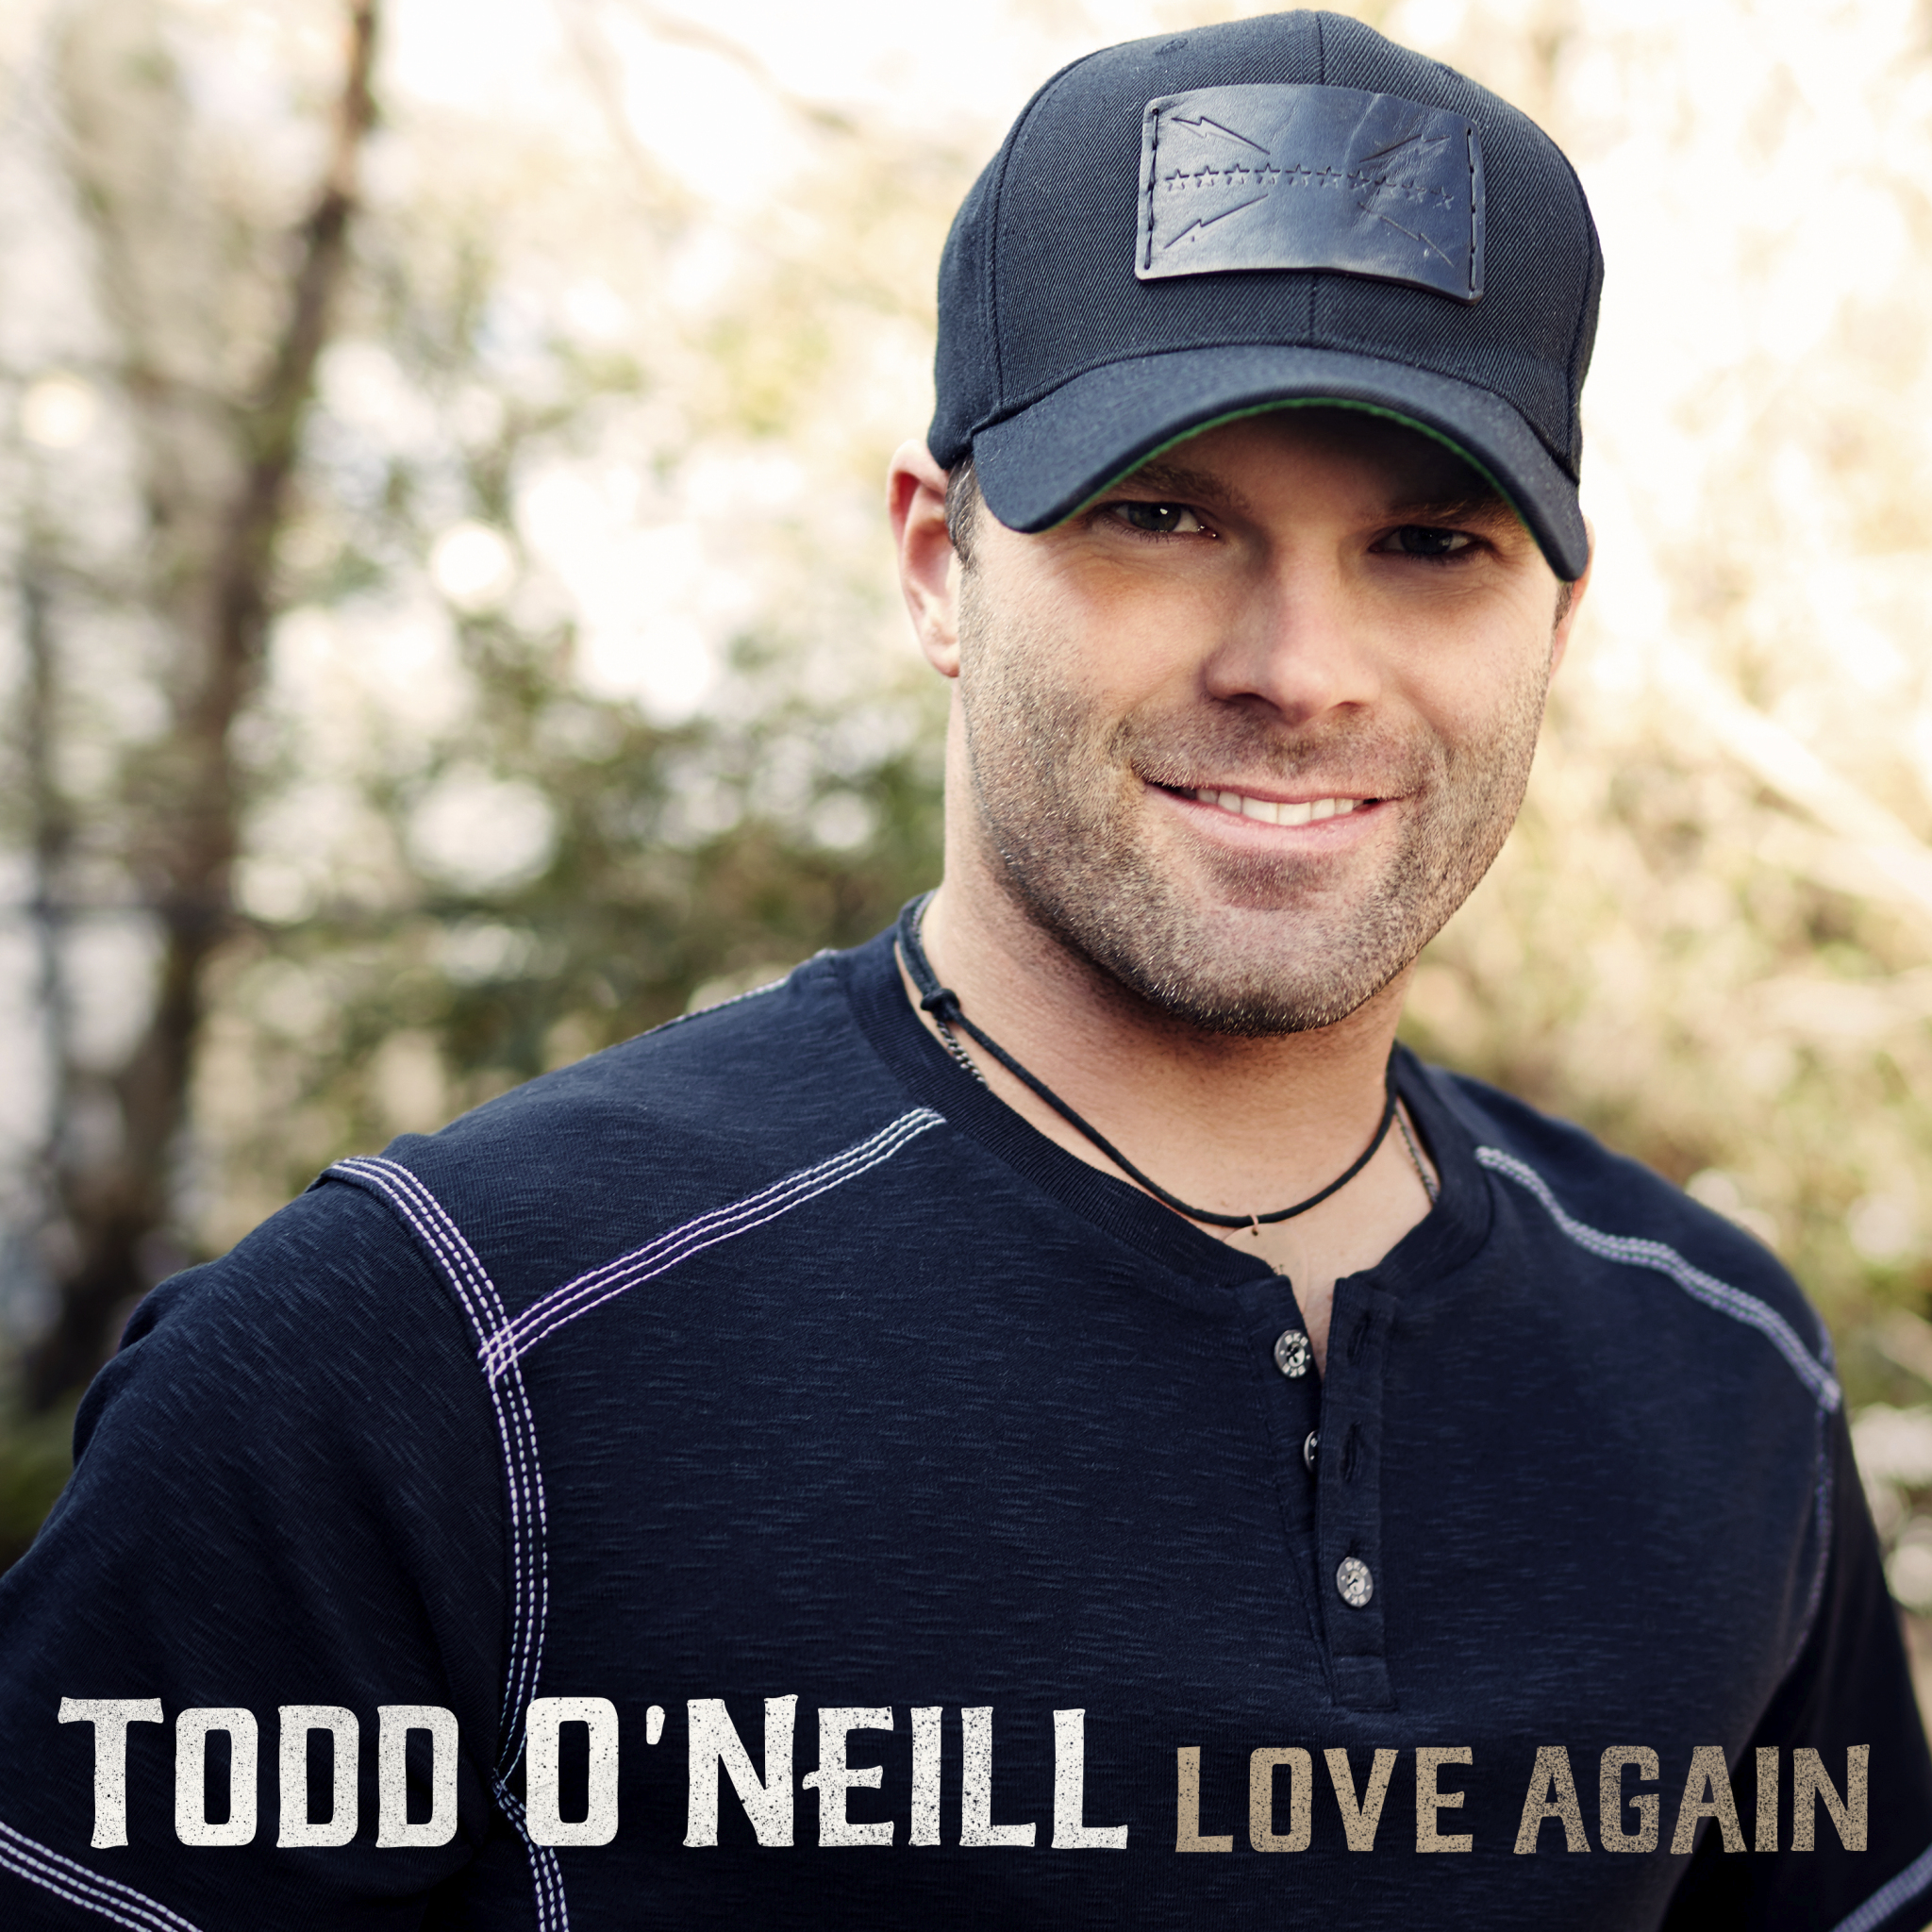 Todd O'Neill Love Again Cover